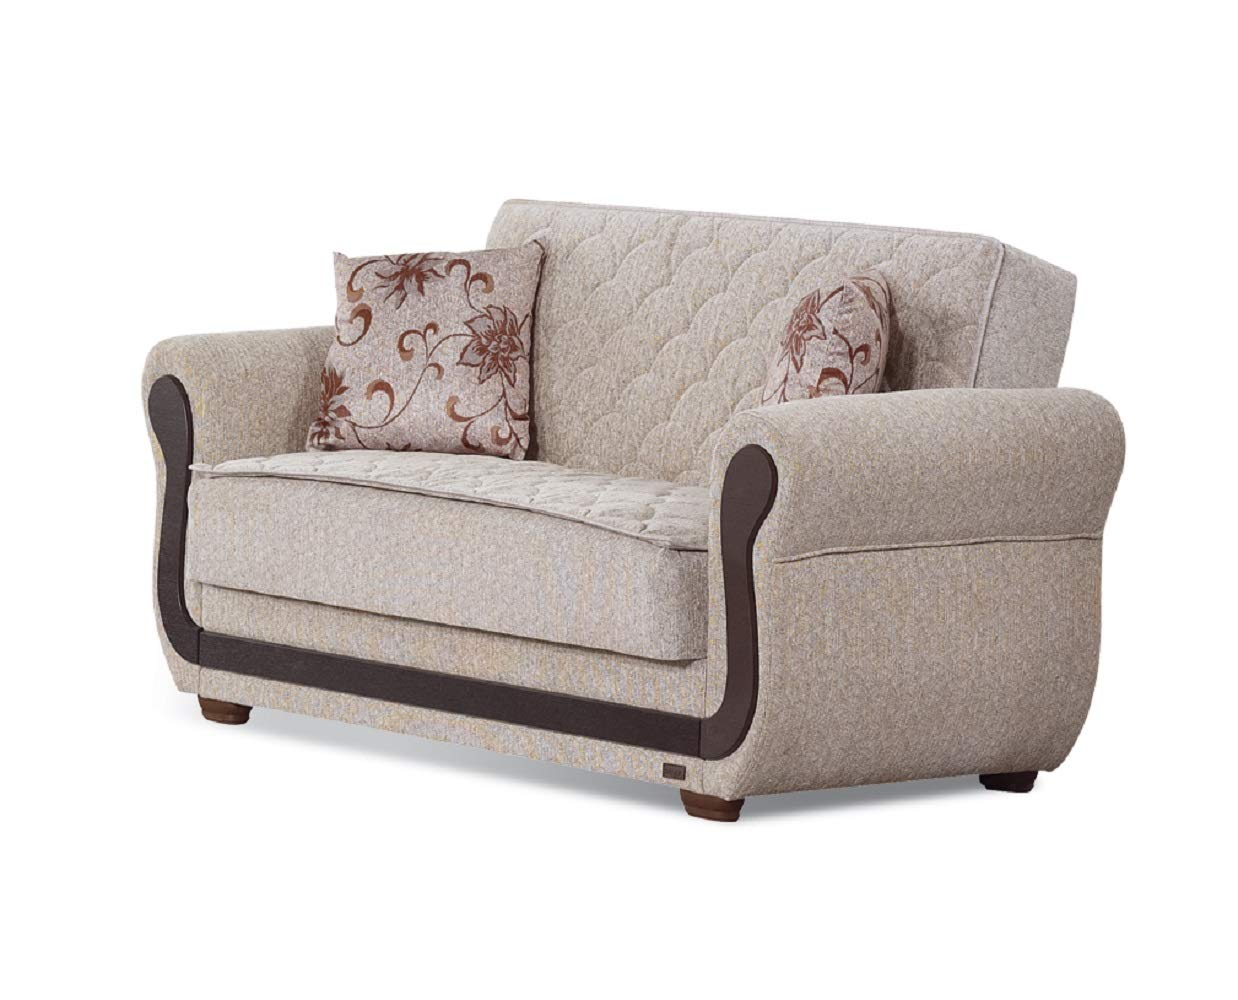 BEYAN Newark Collection Upholstered Convertible Storage Love Seat with Easy Access Storage Space, Includes 2 Pillows, Light Brown by BEYAN